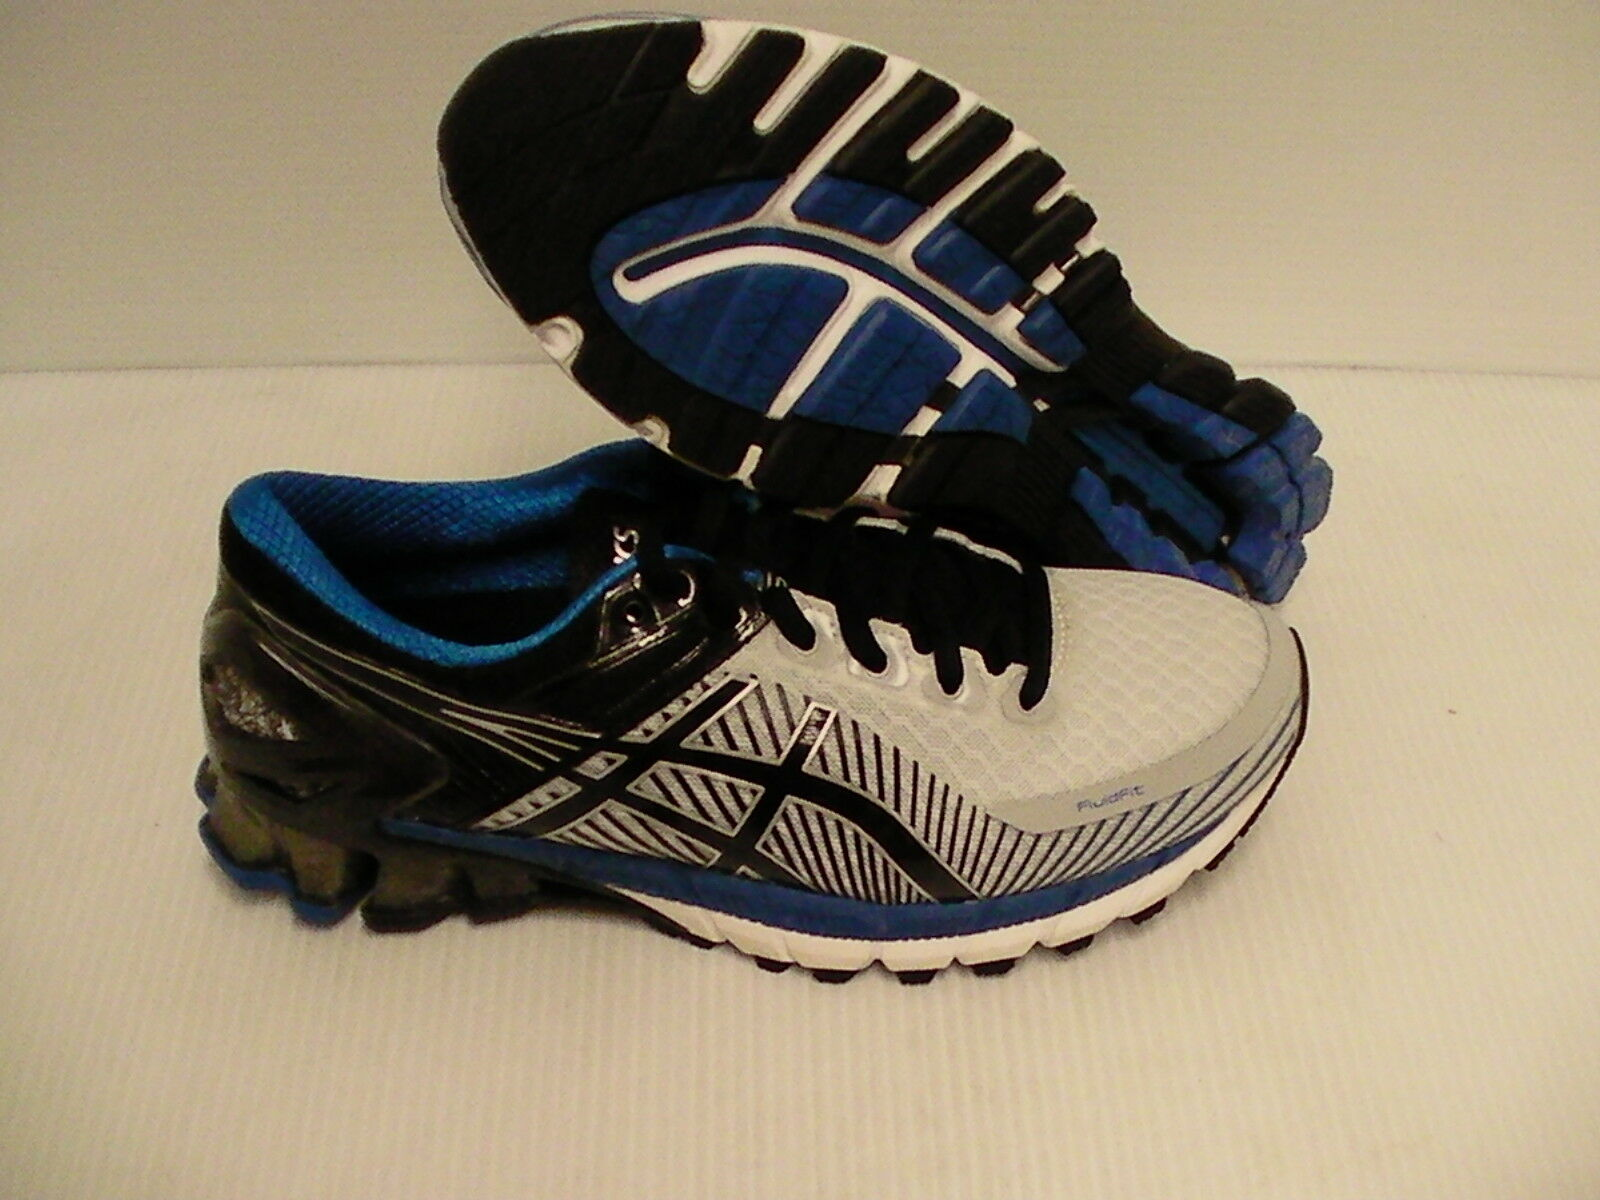 Asics men's running shoes gel kinsei 6 silver black blue size 9 us new